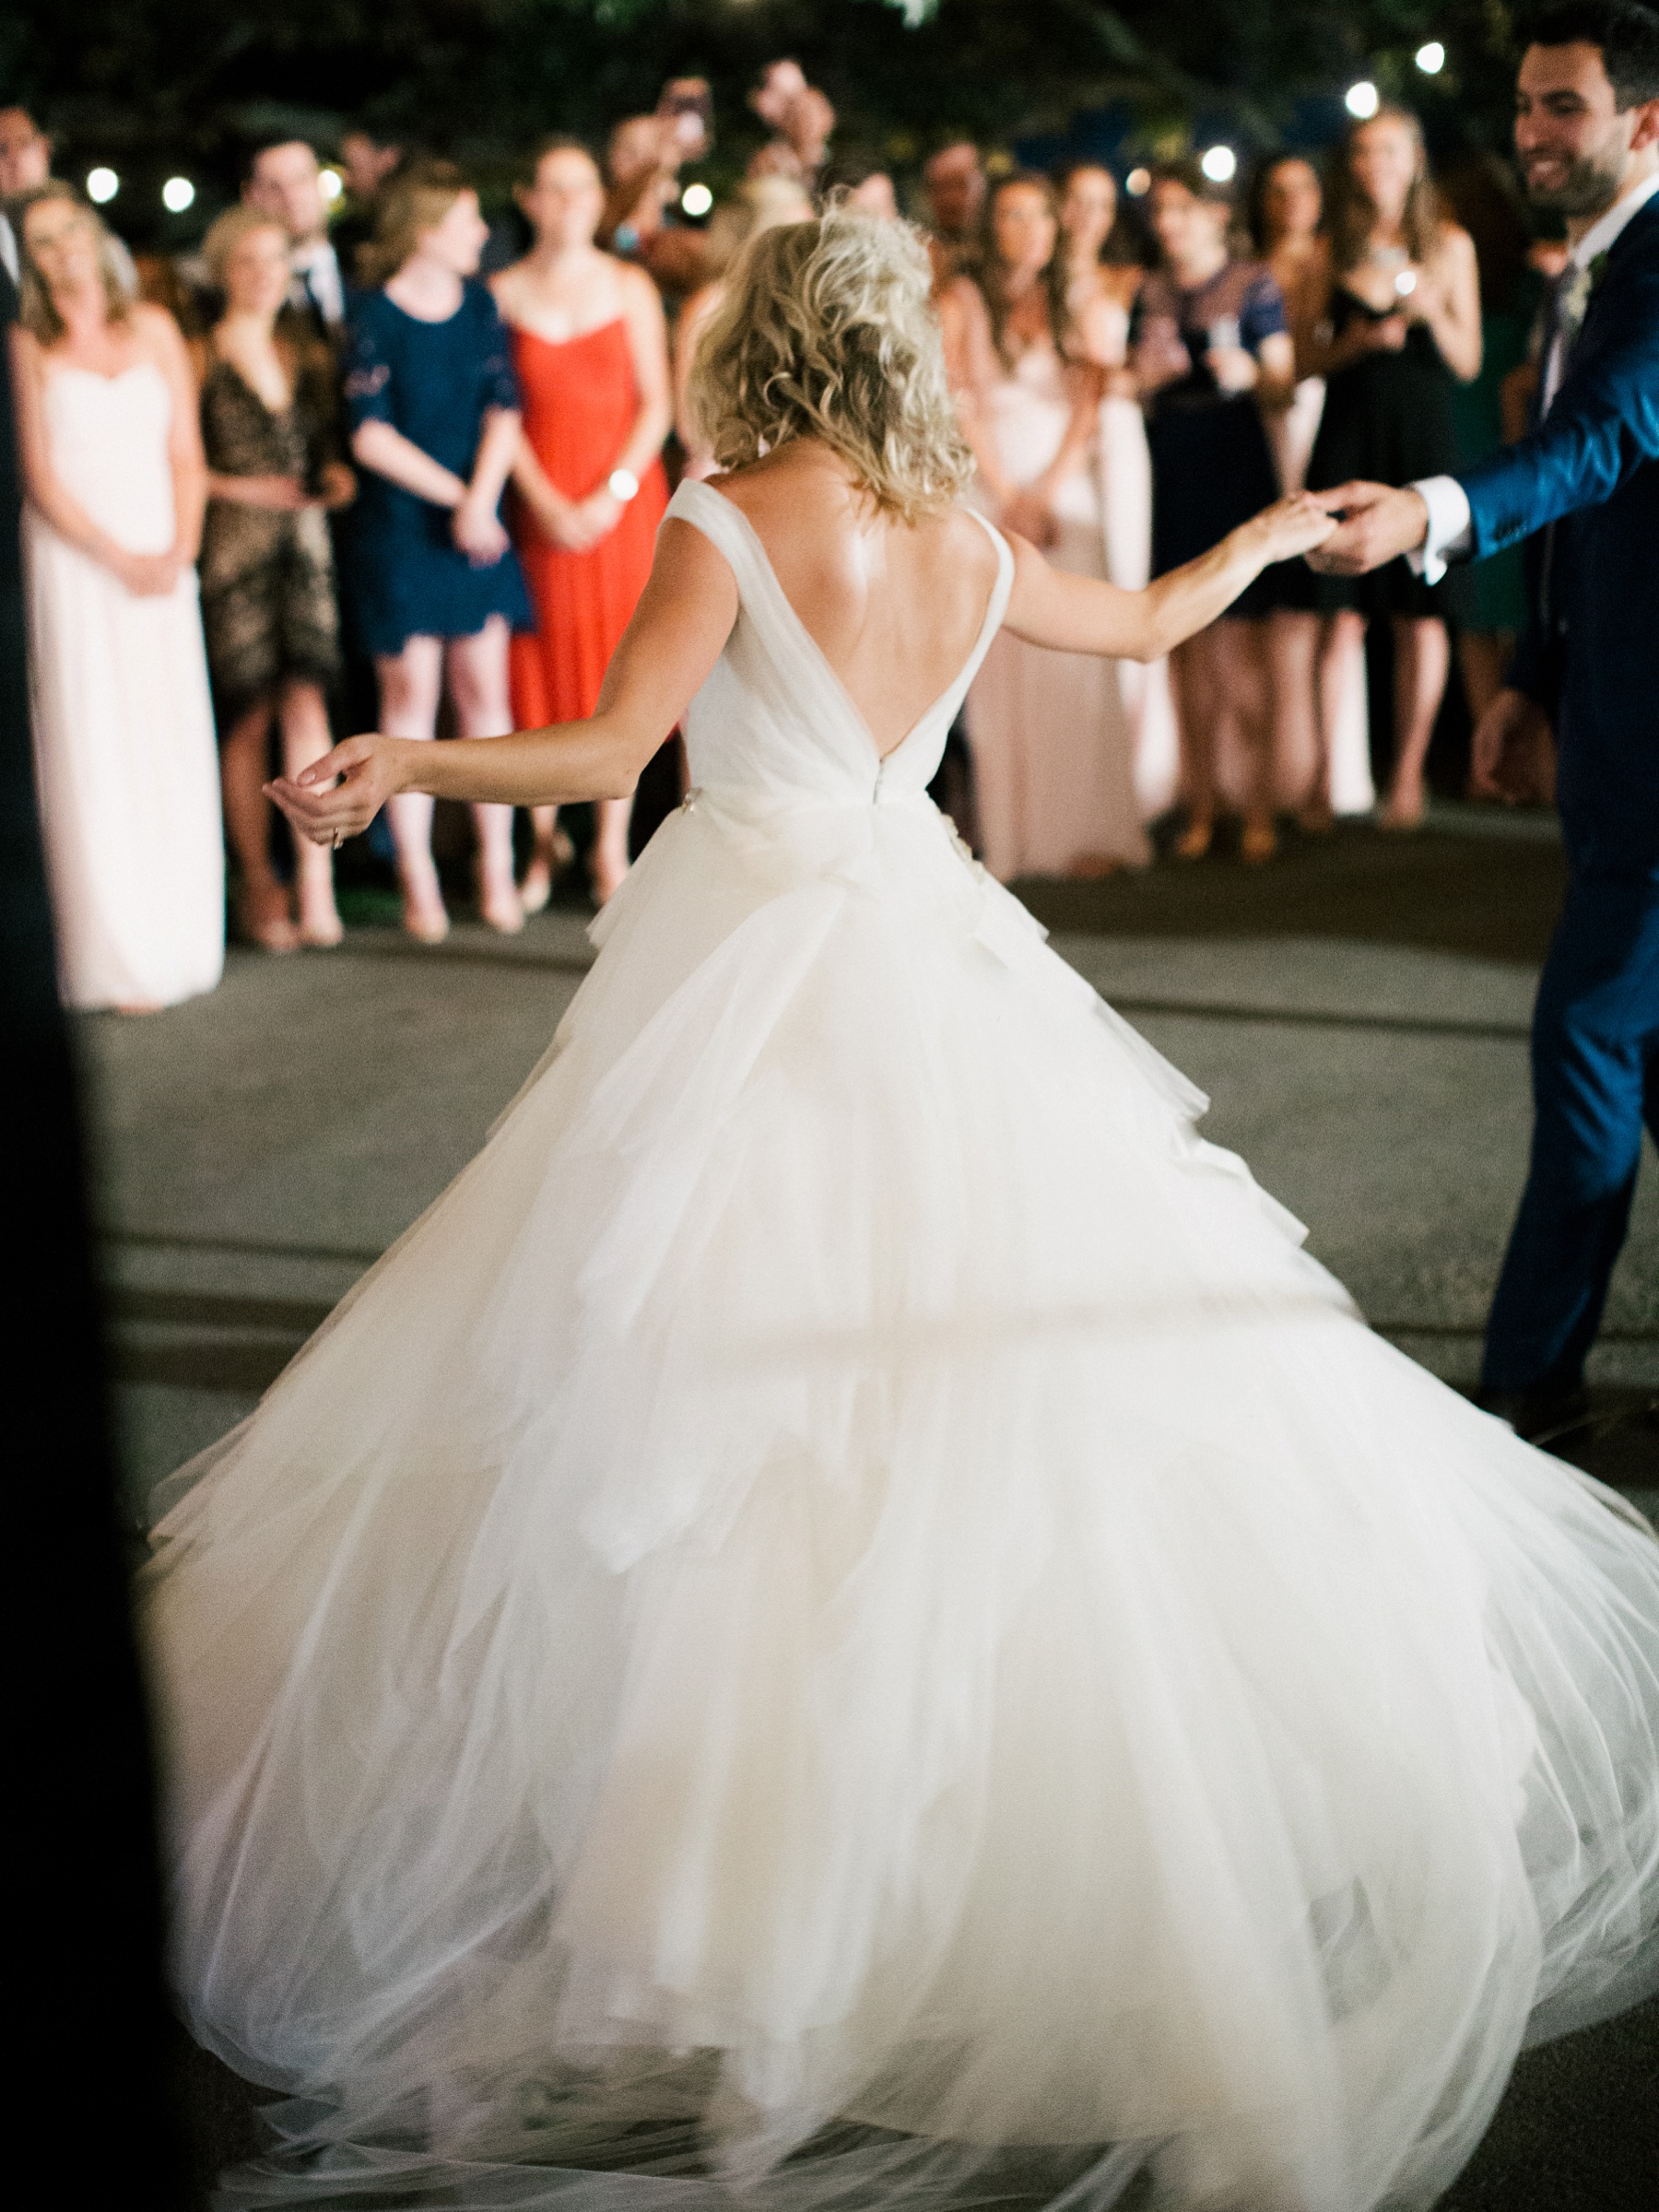 CMT Music City Jessica Mack and Andreas Plackis Wedding_1525.jpg